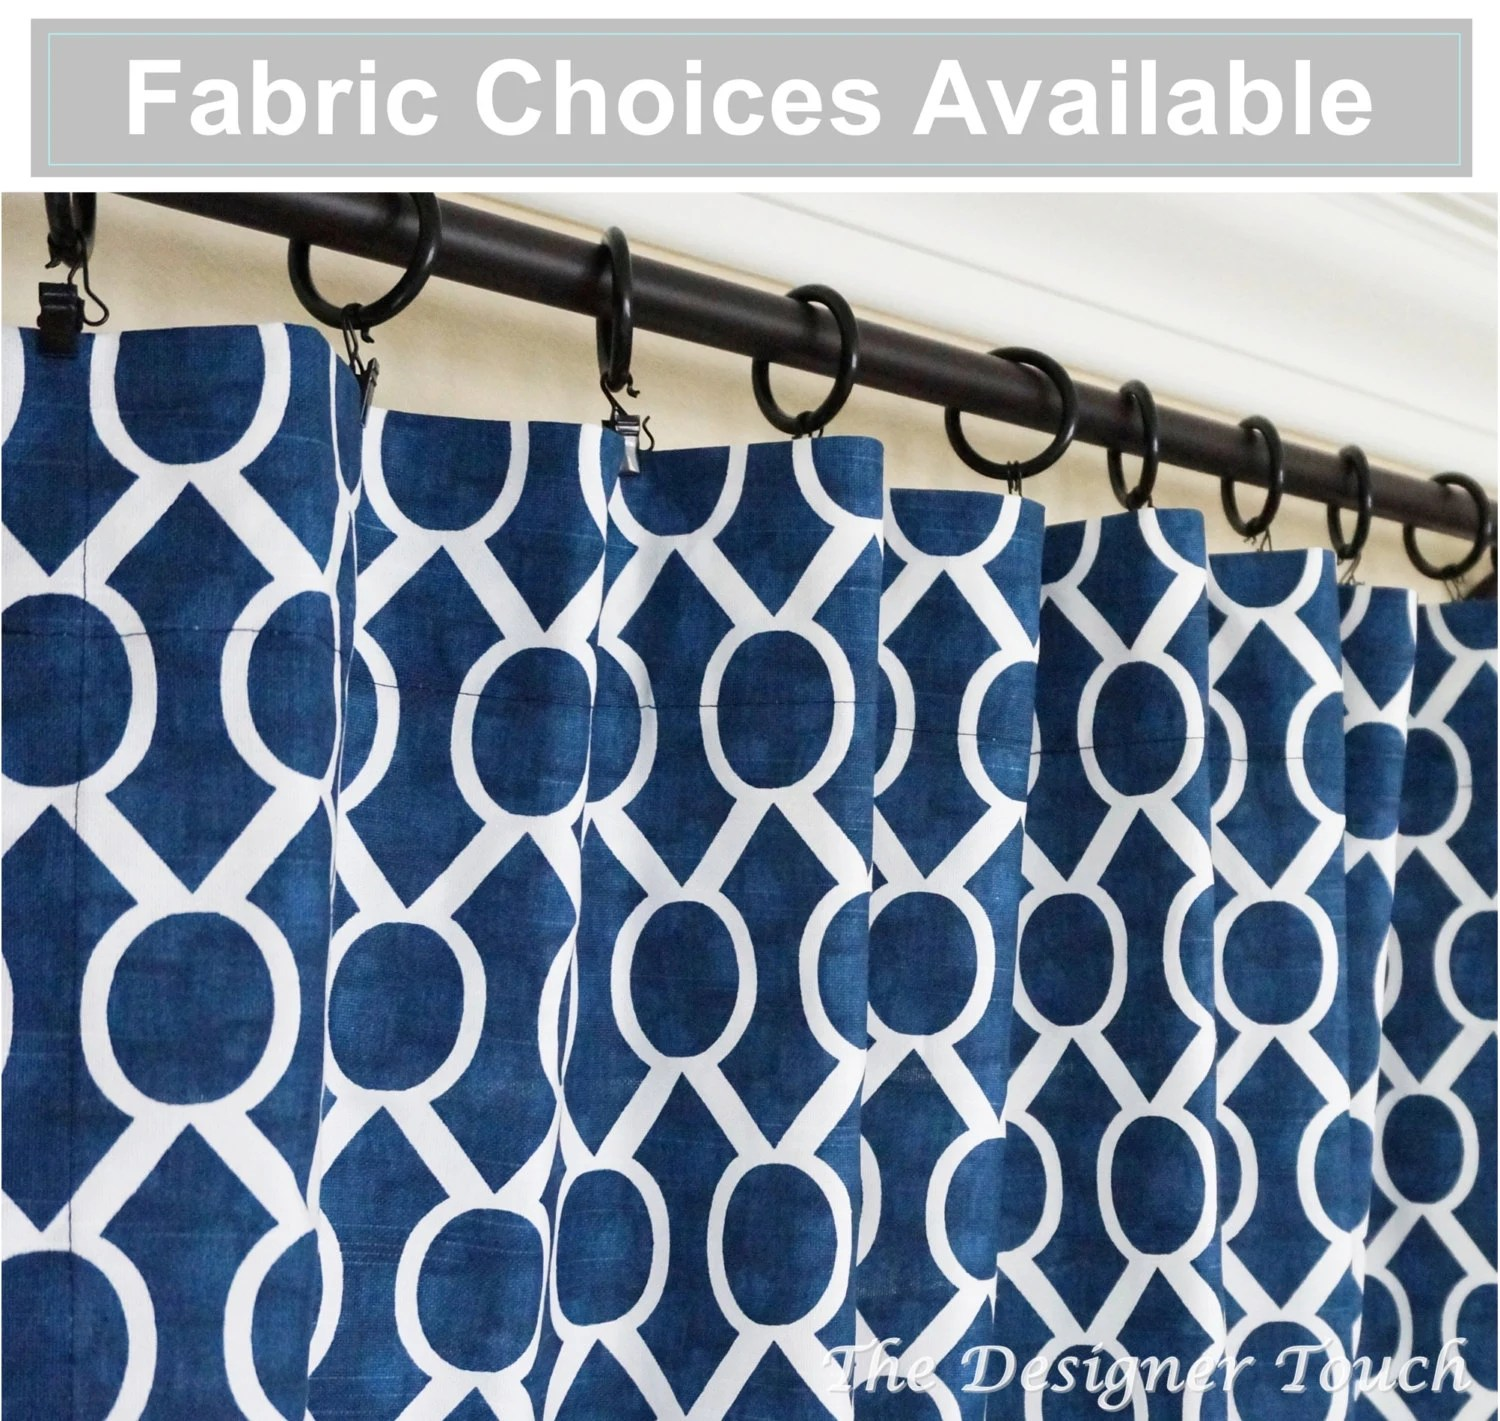 Ready Made Curtains 108 Drop Navy Blue Curtain Nautical Curtain Moroccan Curtain Navy Curtain Panel 63